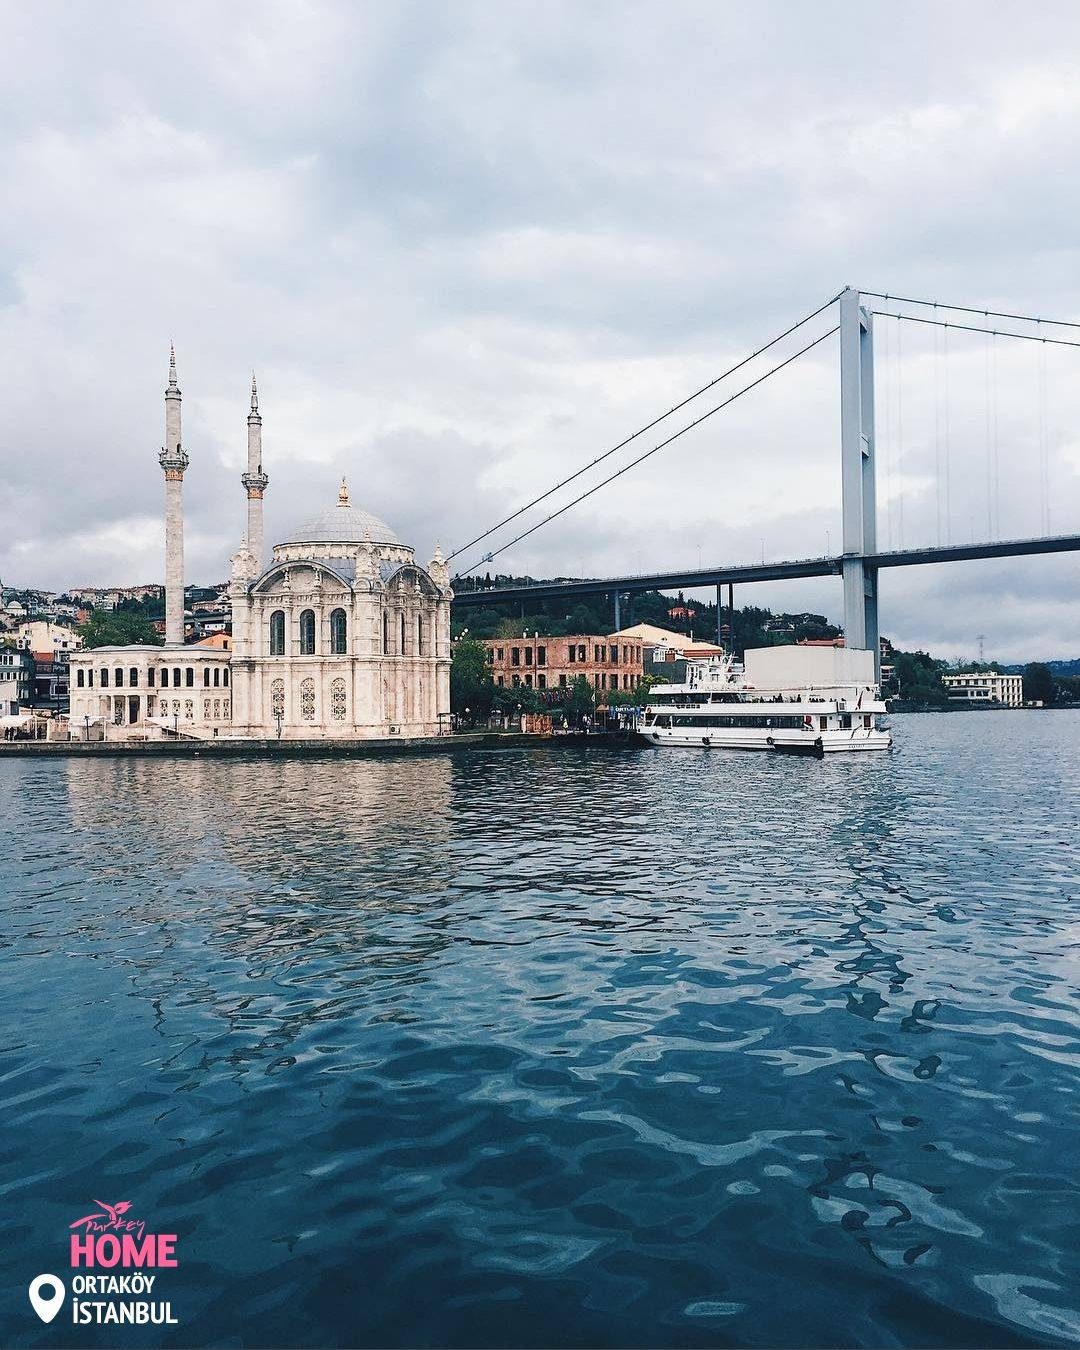 Ortakoy Mosque & Bosphorus Bridge